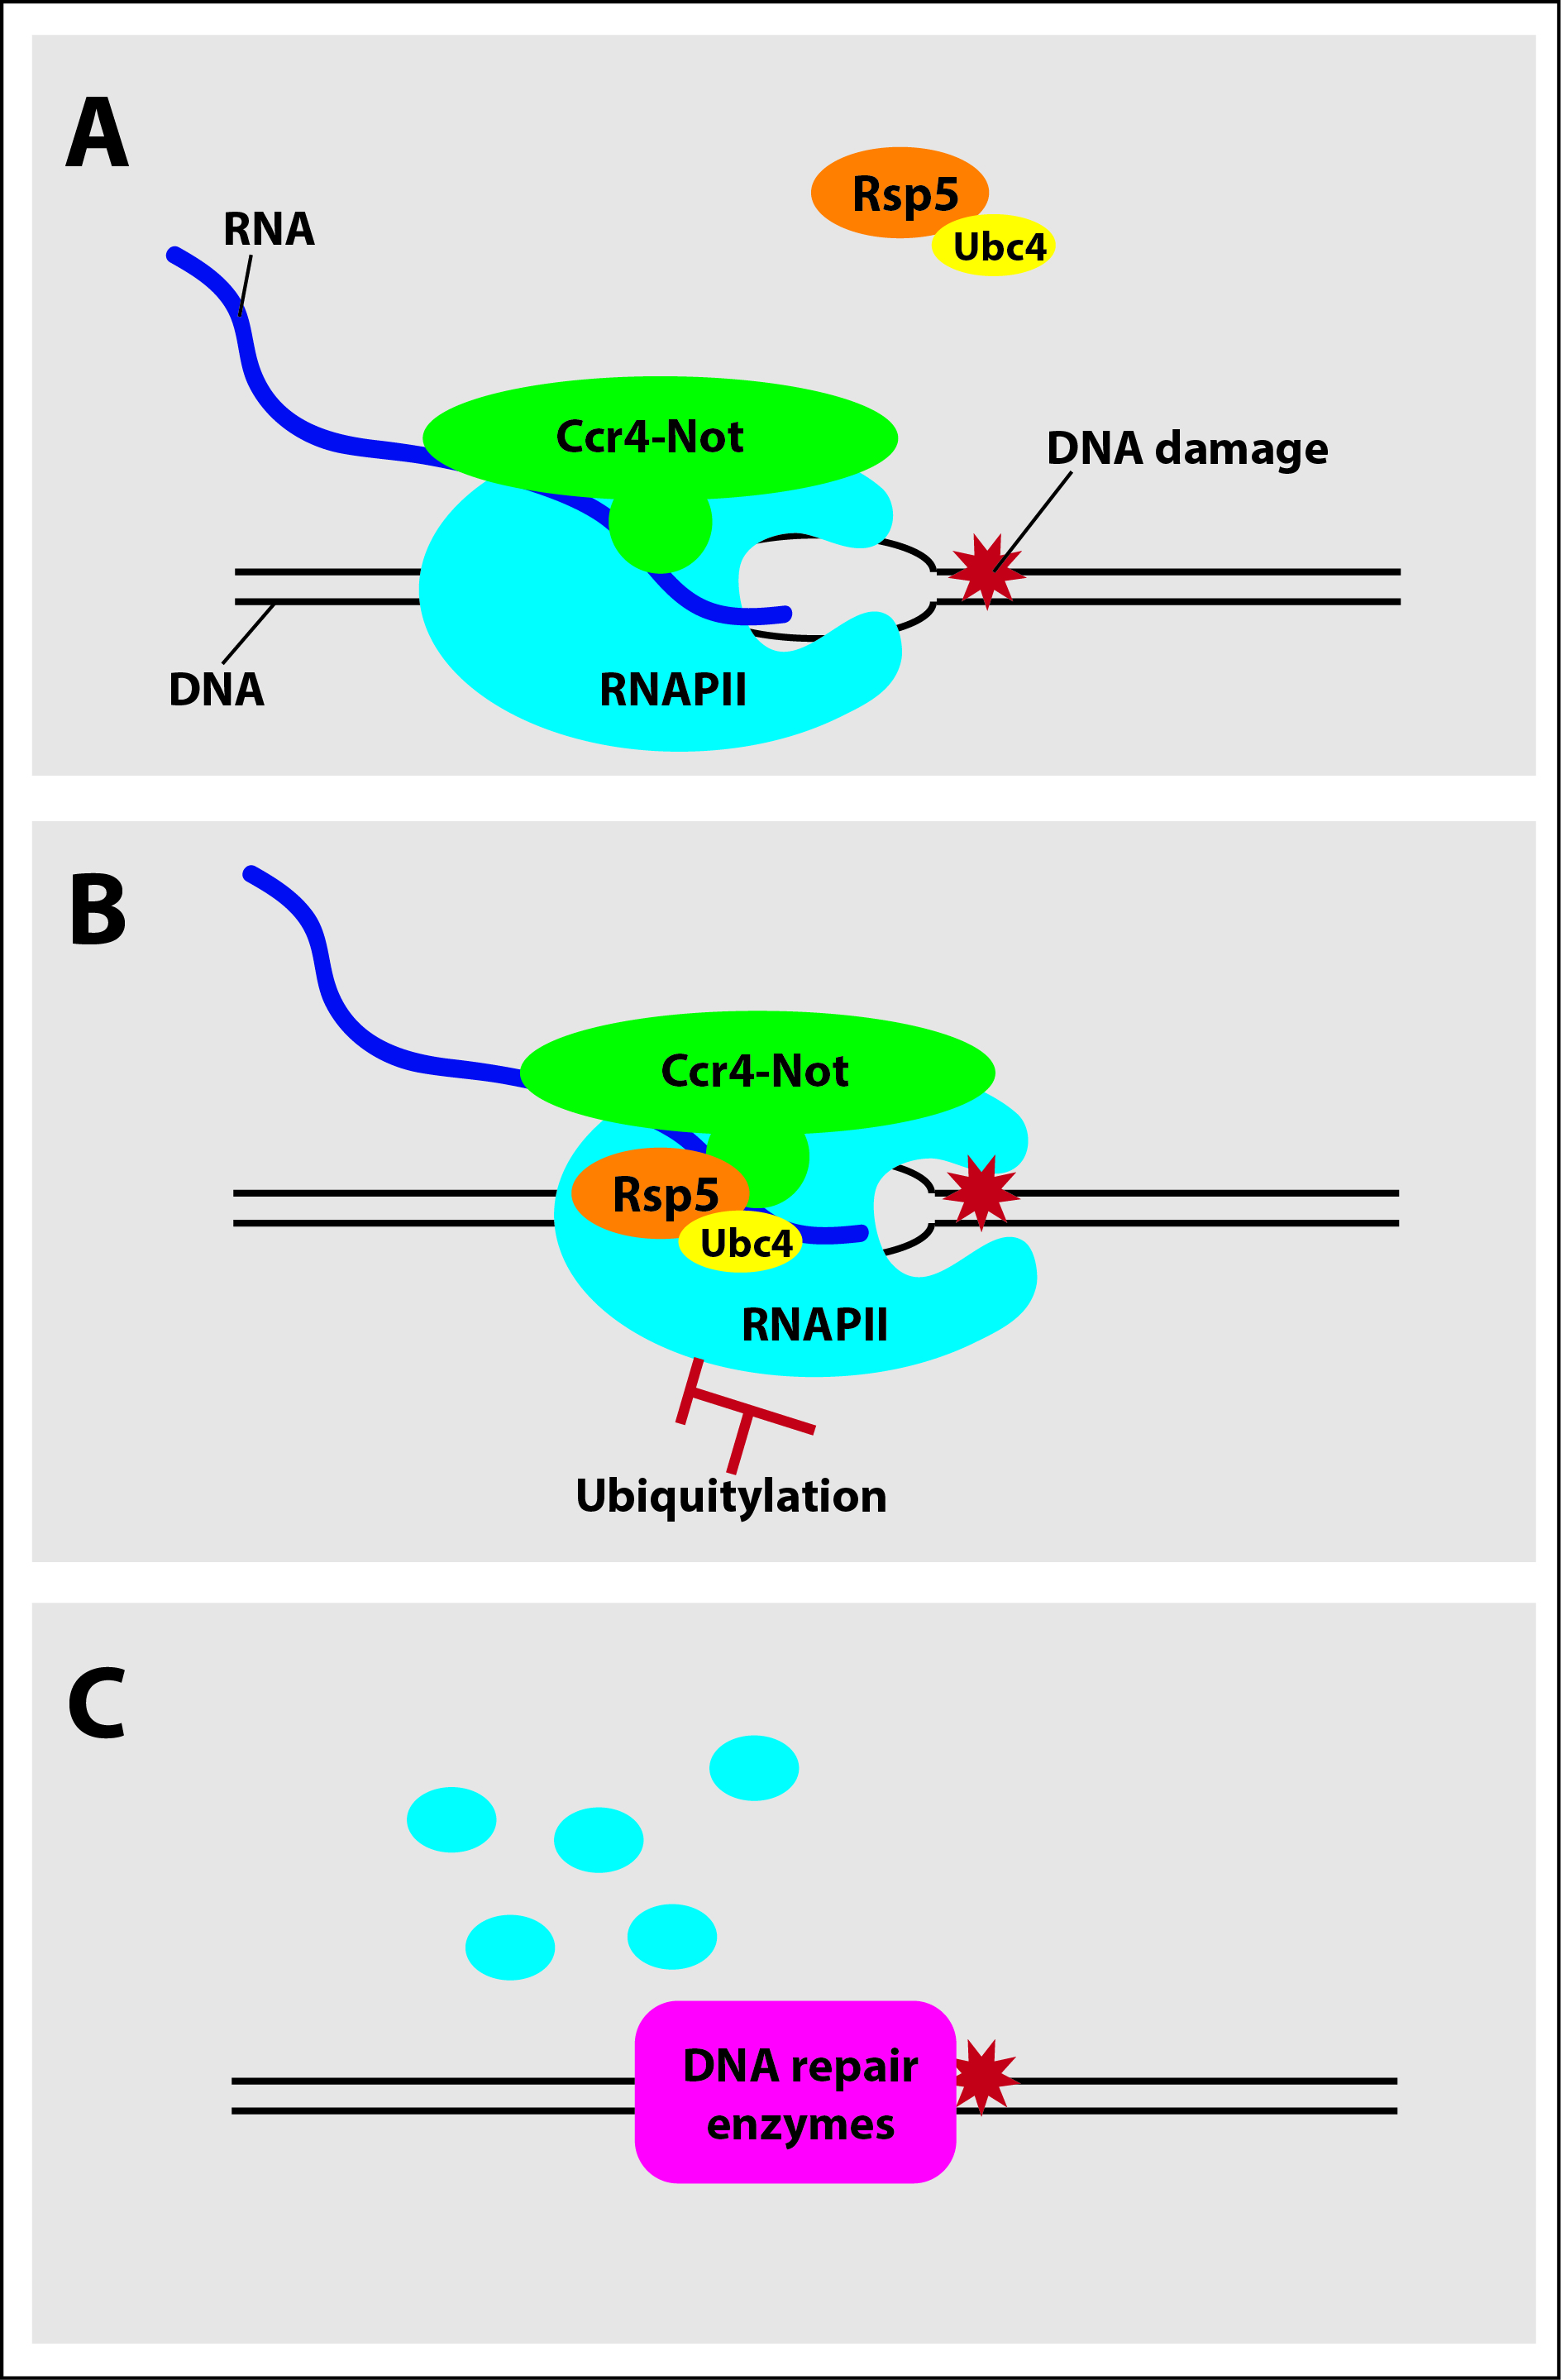 Ccr4-Not to the rescue. A) Ccr4-Not complex associates with RNA polymerase II (RNAPII) as it travels along a strand of DNA producing RNA. B) When RNAPII becomes stuck due to DNA damage, Ccr4-Not recruits factors that mark RNAPII with a small signaling molecule called ubiquitin. C) Ubiquitylation triggers degradation of RNAPII, allowing DNA repair enzymes to repair the damage and restore gene expression. Credit: Reese Laboratory, Penn State.